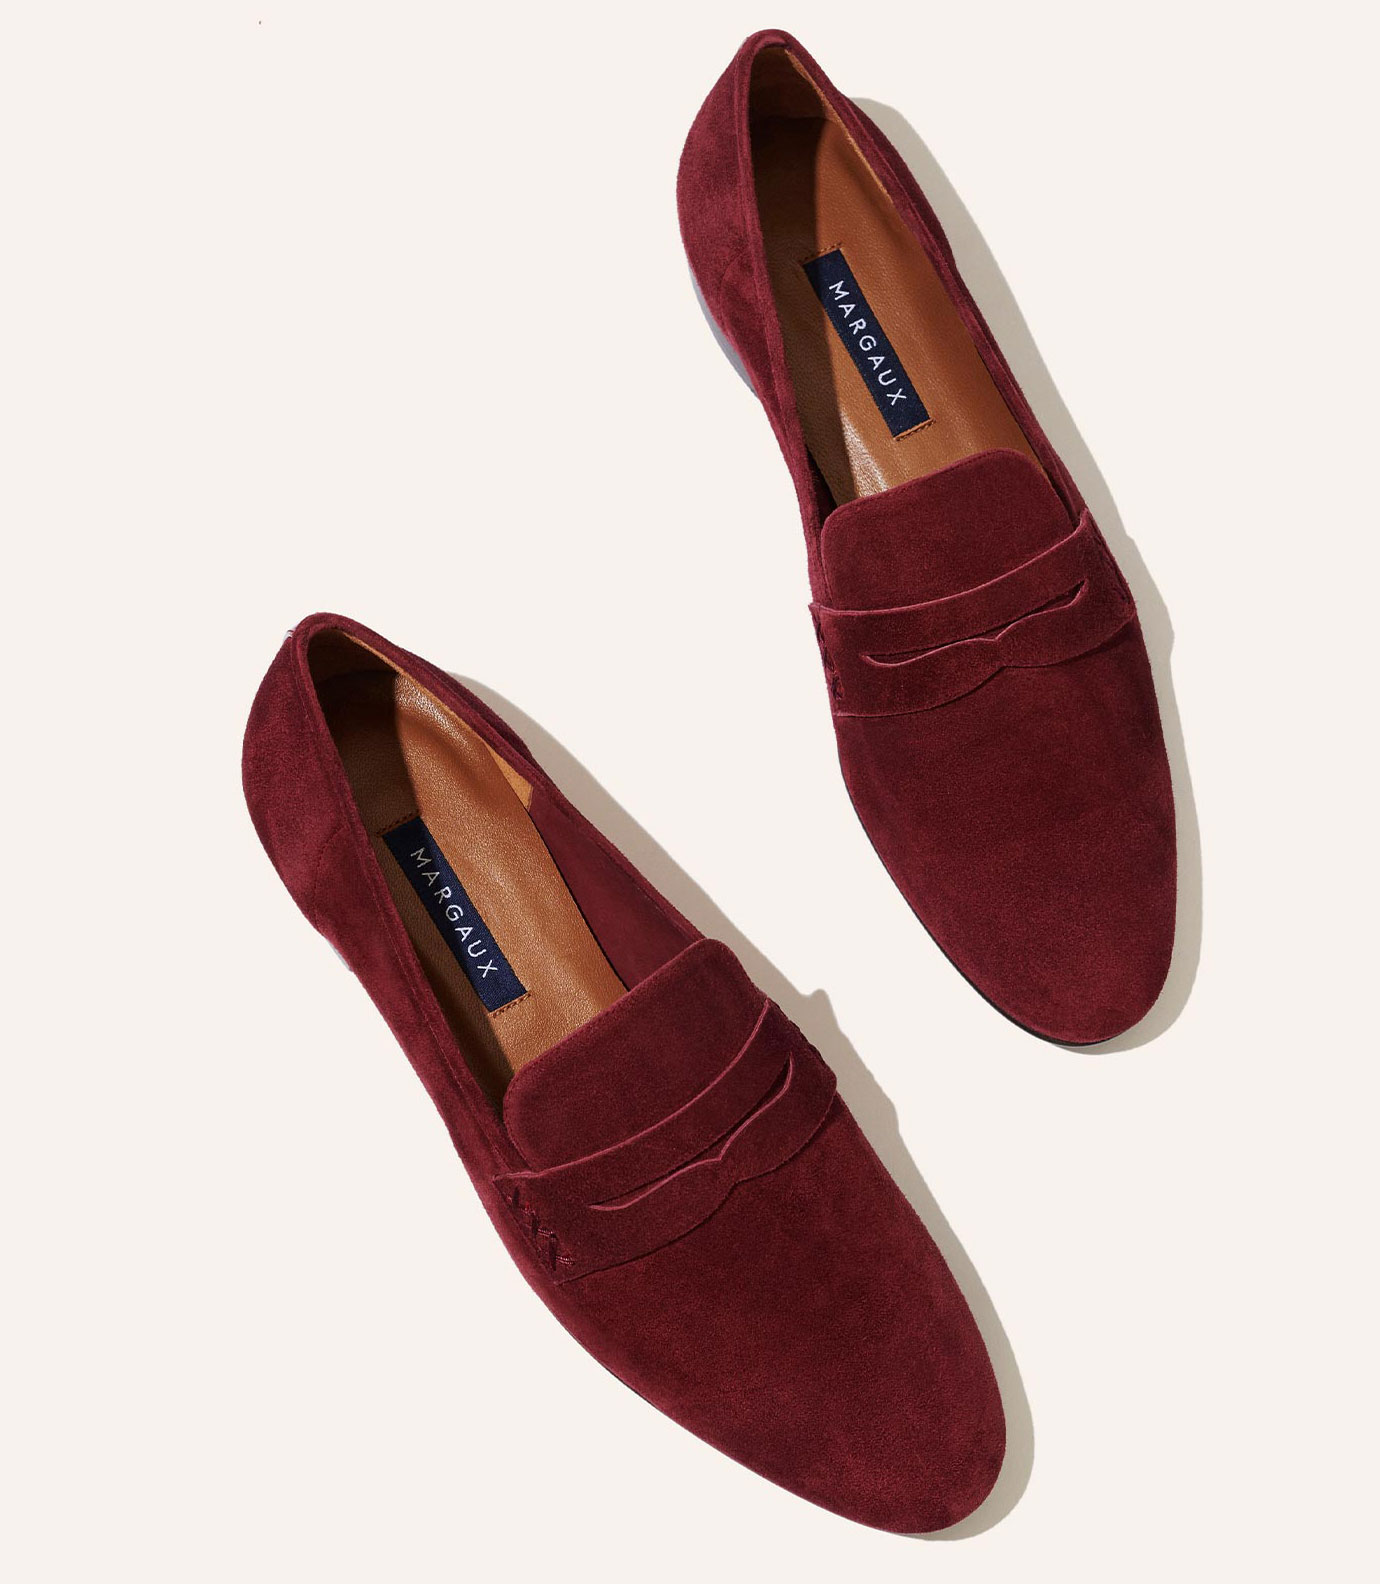 Best gifts, gift ideas for women - Margaux Penny Loafer